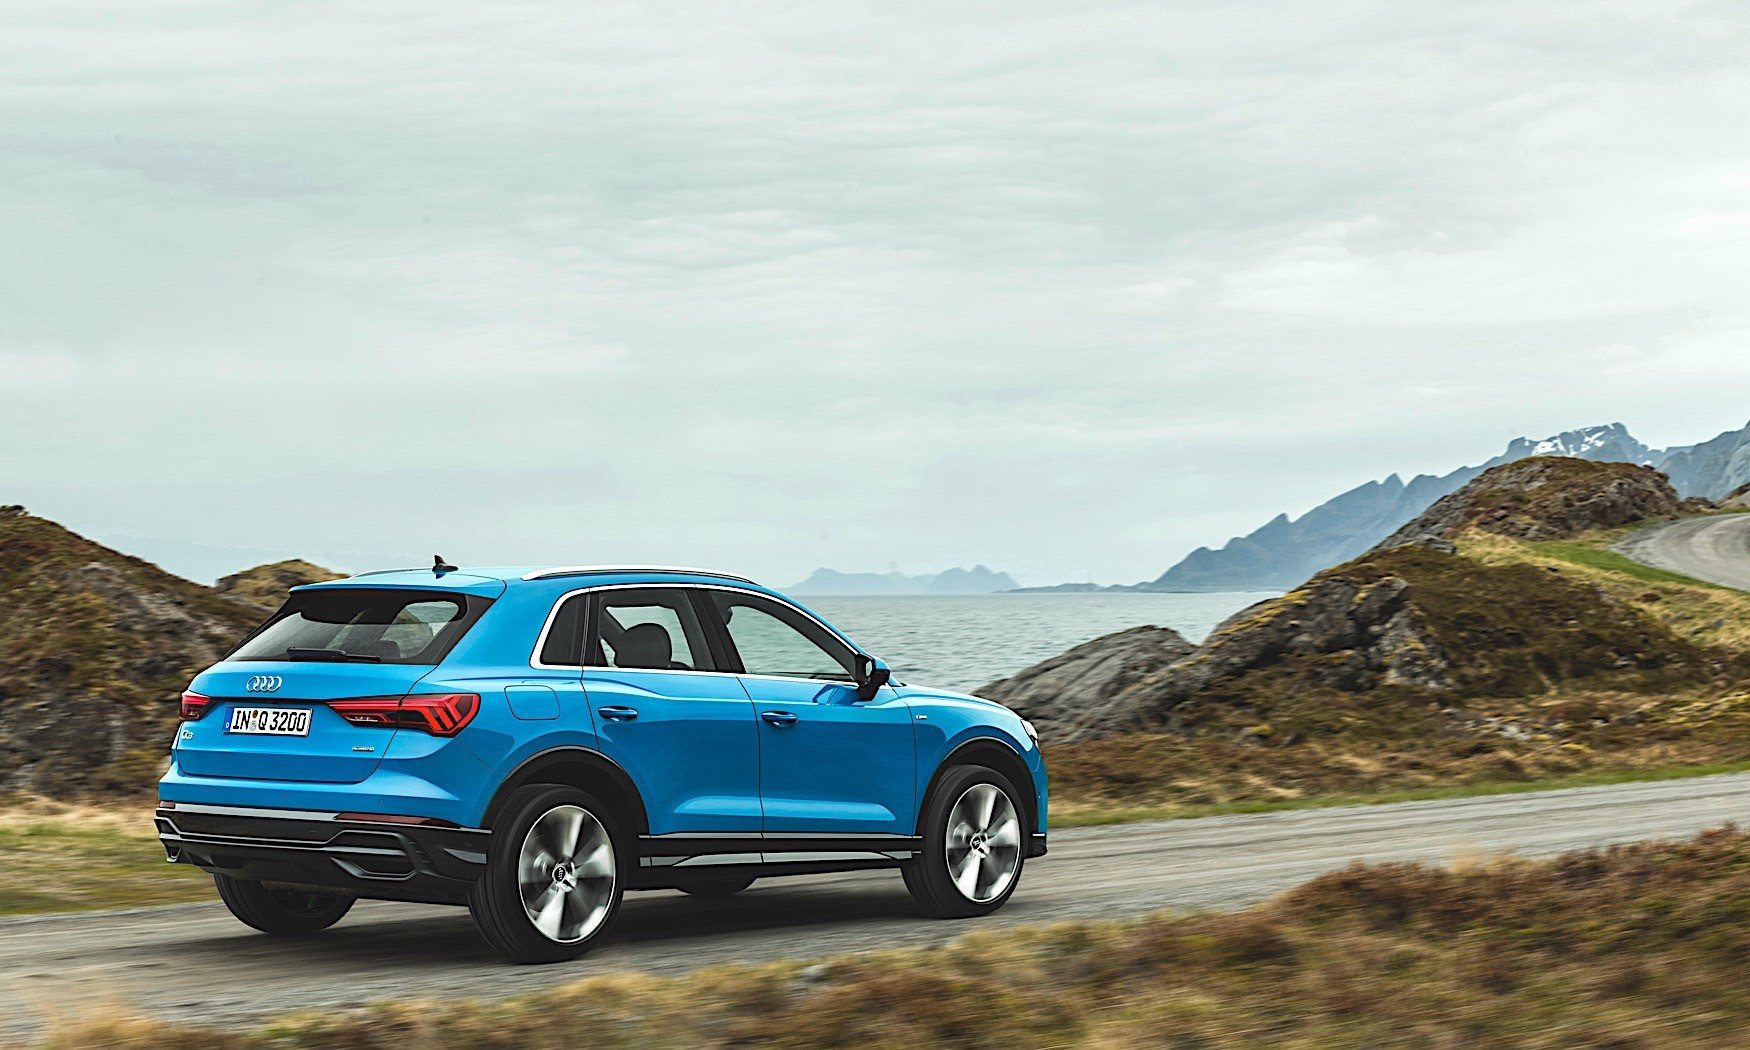 2019 Audi Q3 Engine Range Extended With 2.0 TDI and TFSI ...